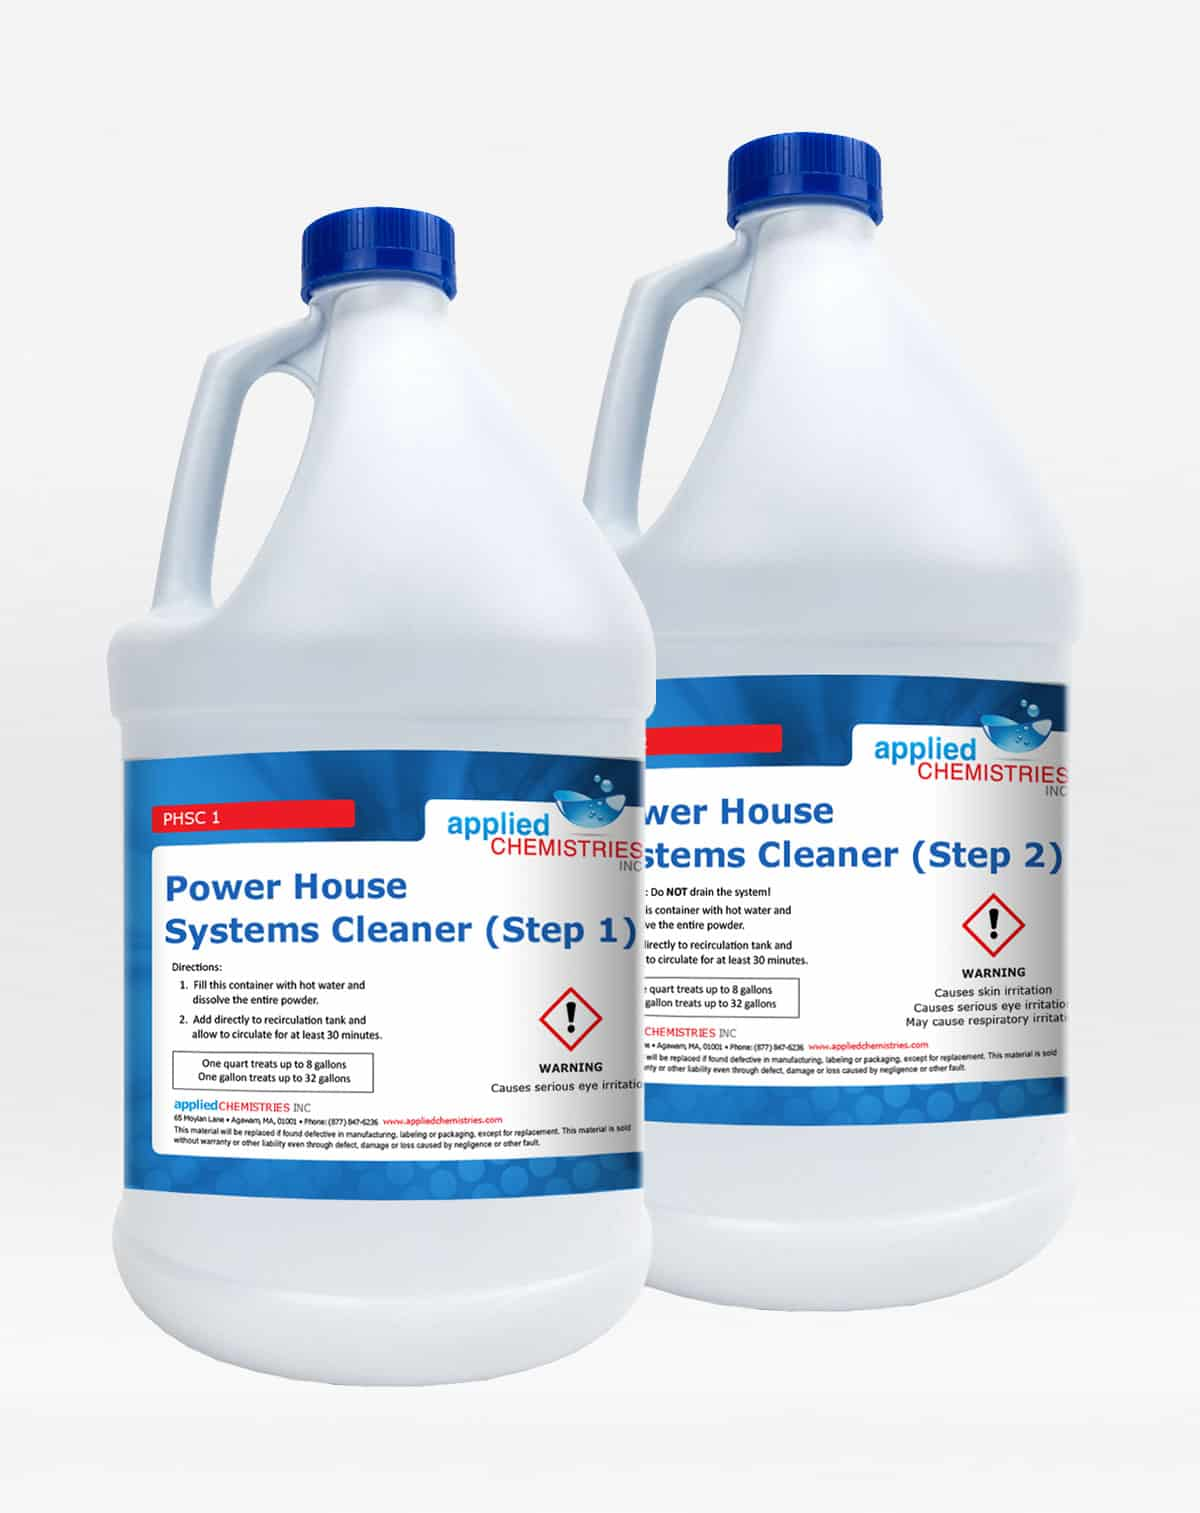 Power House Systems Cleaner